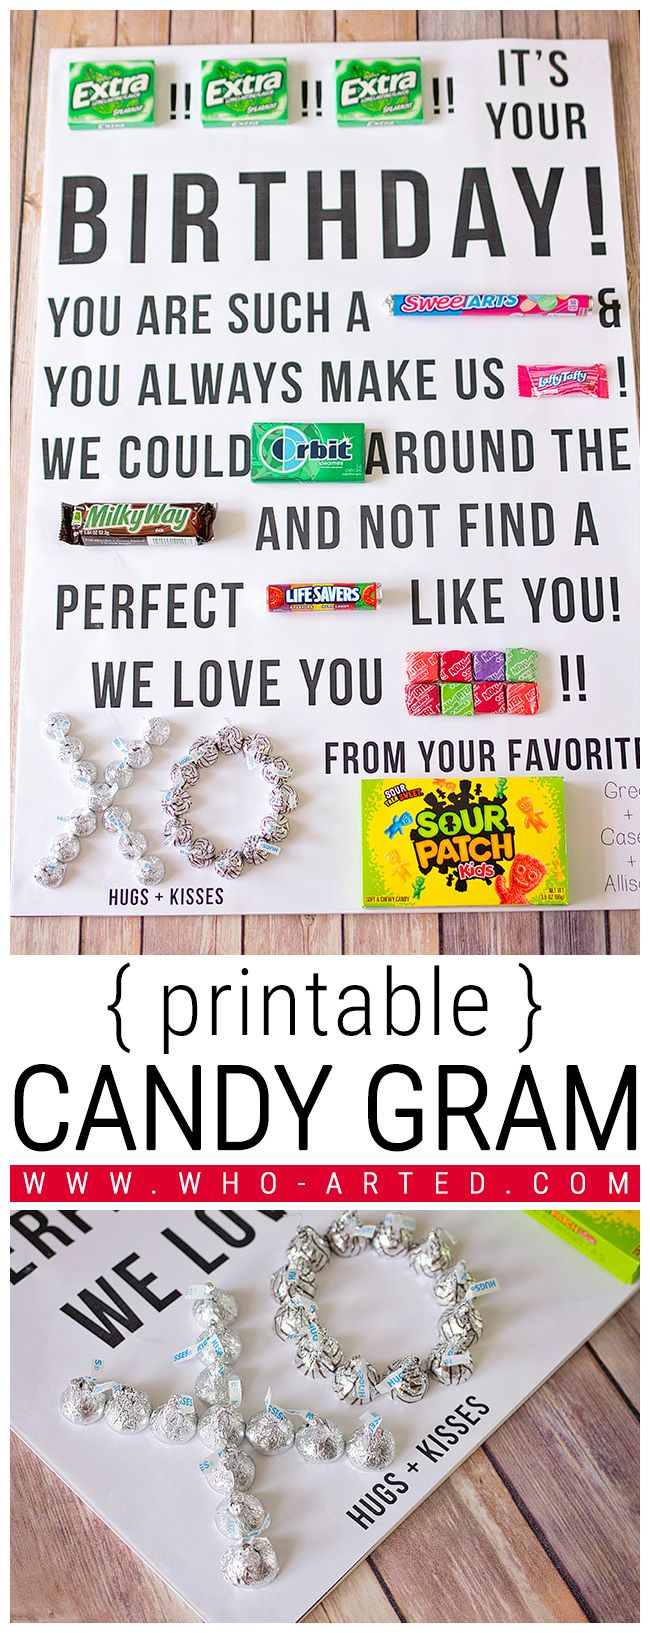 Candy Gram Birthday Card 2 00 Pinterest 01 30th Birthday